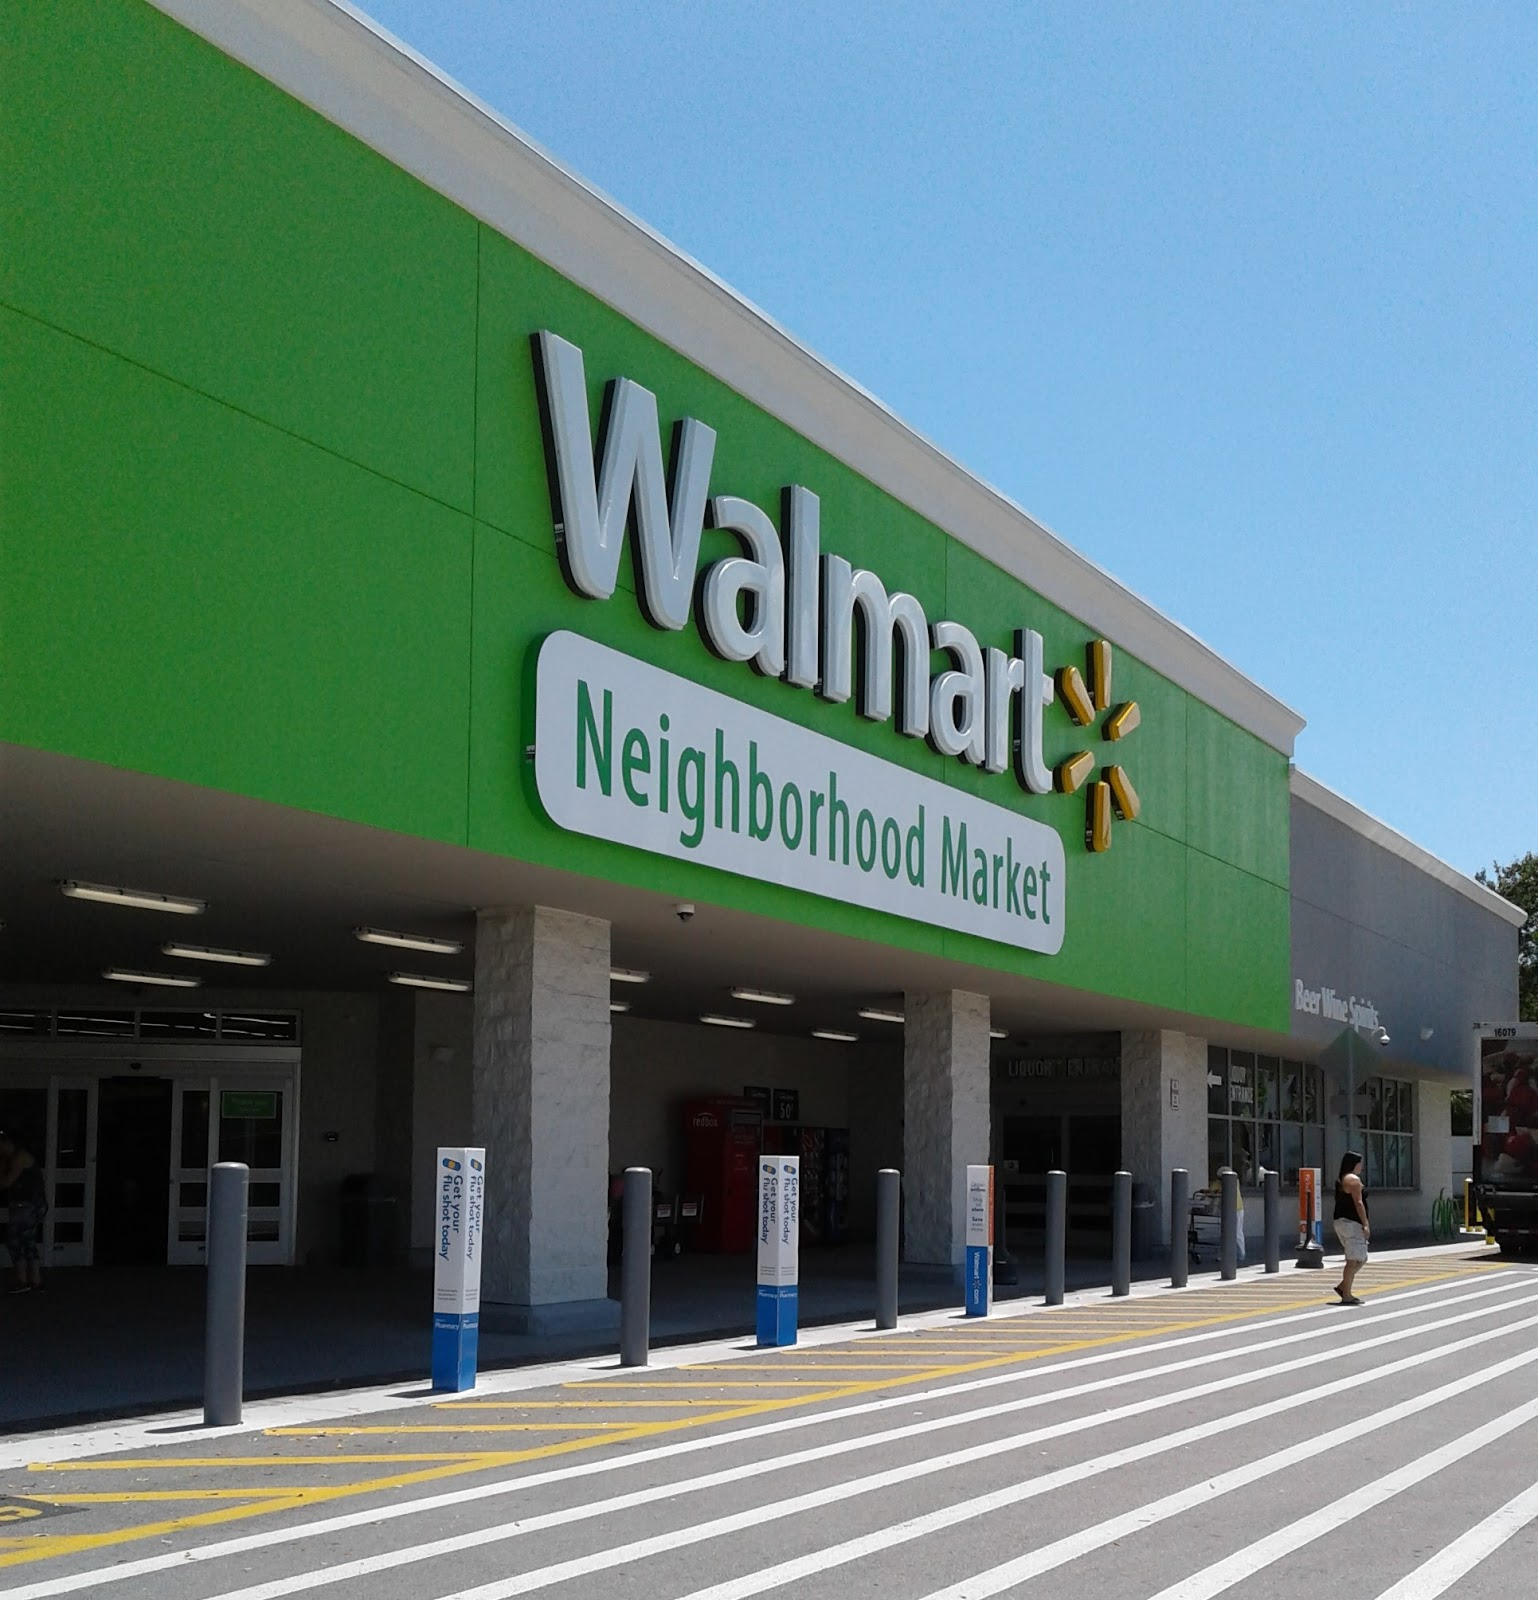 Albertsons Florida Blog: The Walmart-ification of Albertsons #4357 ...